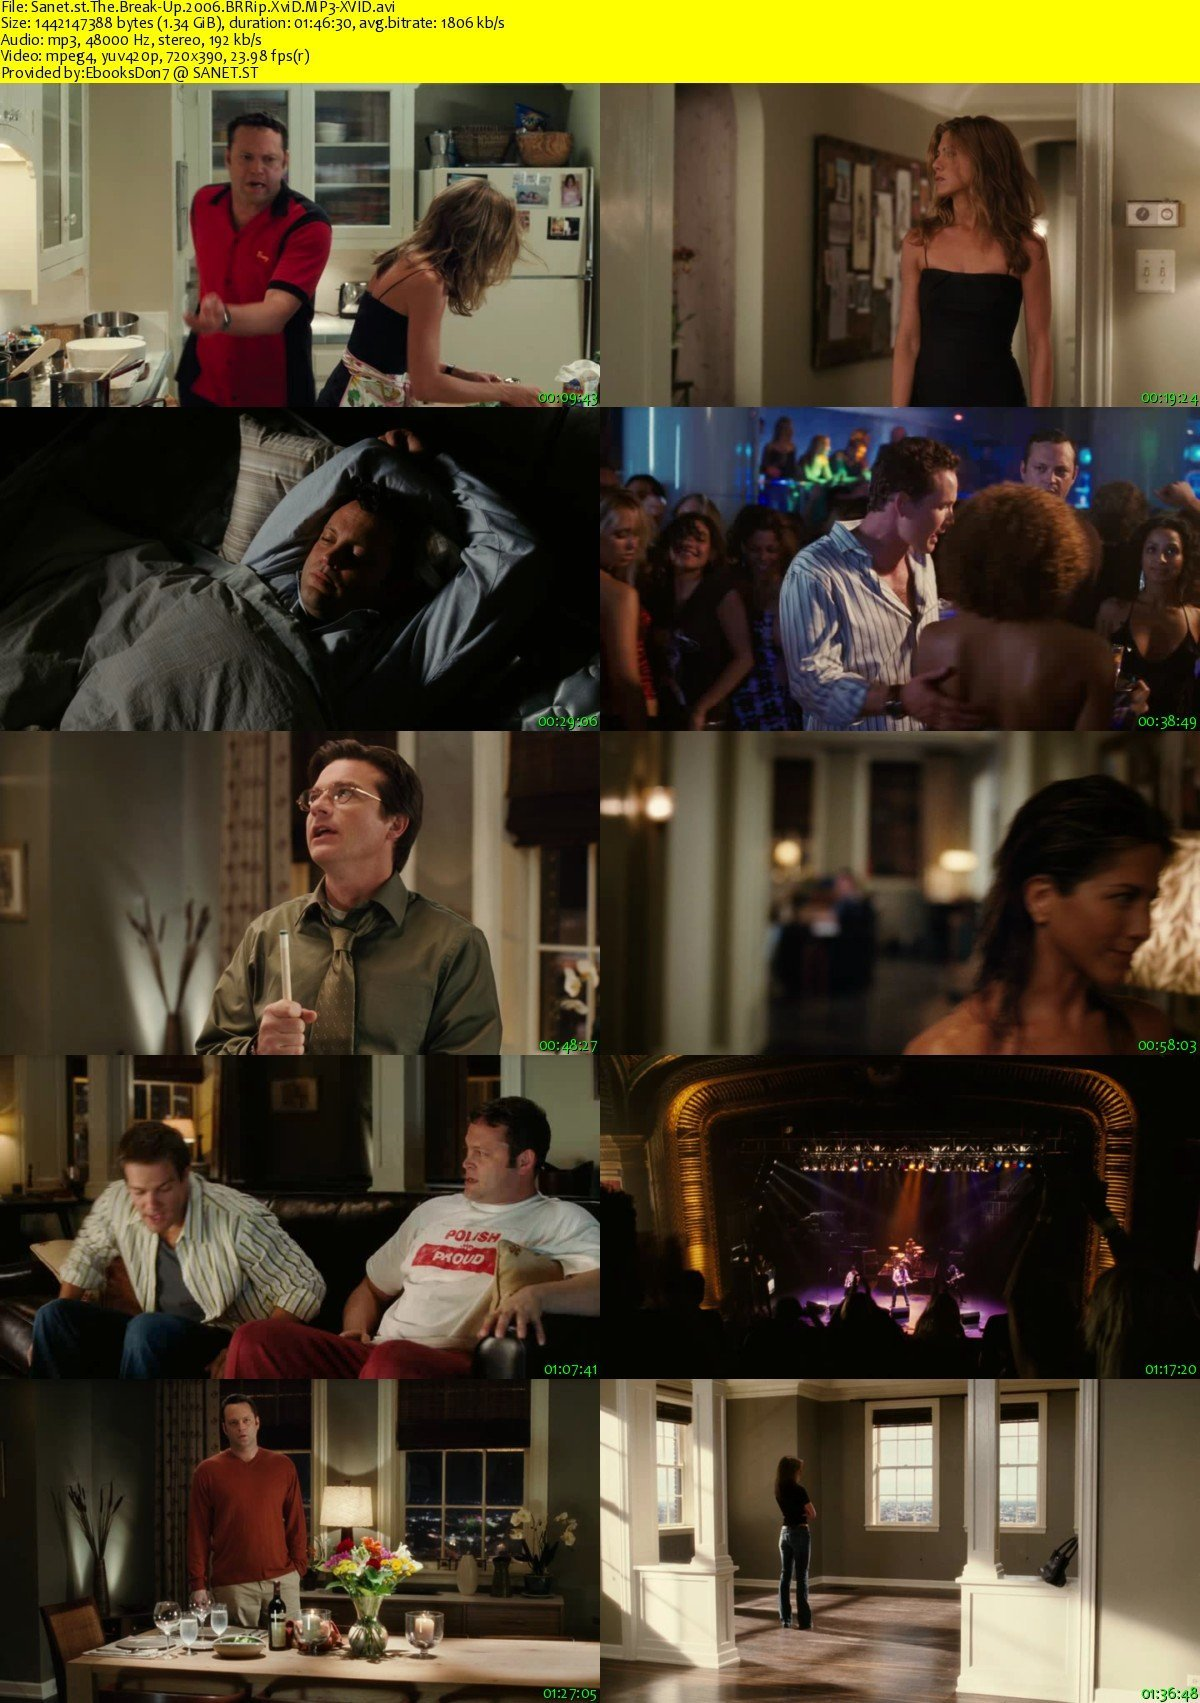 Download The Break Up 2006 Brrip Xvid Mp3 Xvid Softarchive